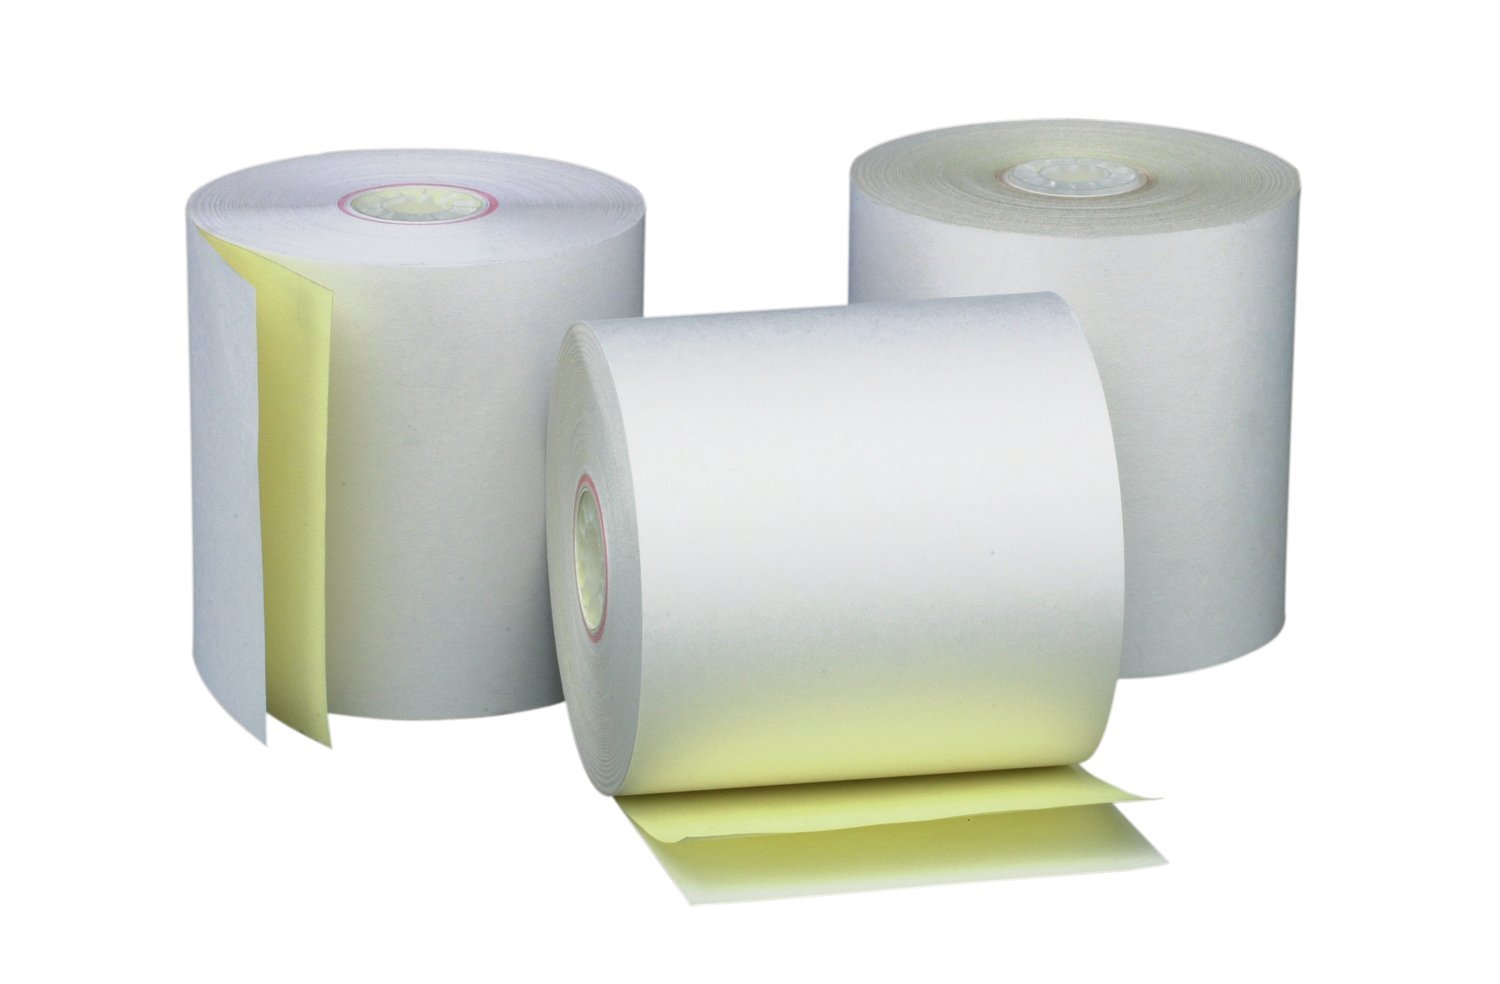 PM Company Perfection 2 Ply POS/Cash Register Rolls, 3 Inches X 90 Feet, White/Canary, 50 per Carton (07706)